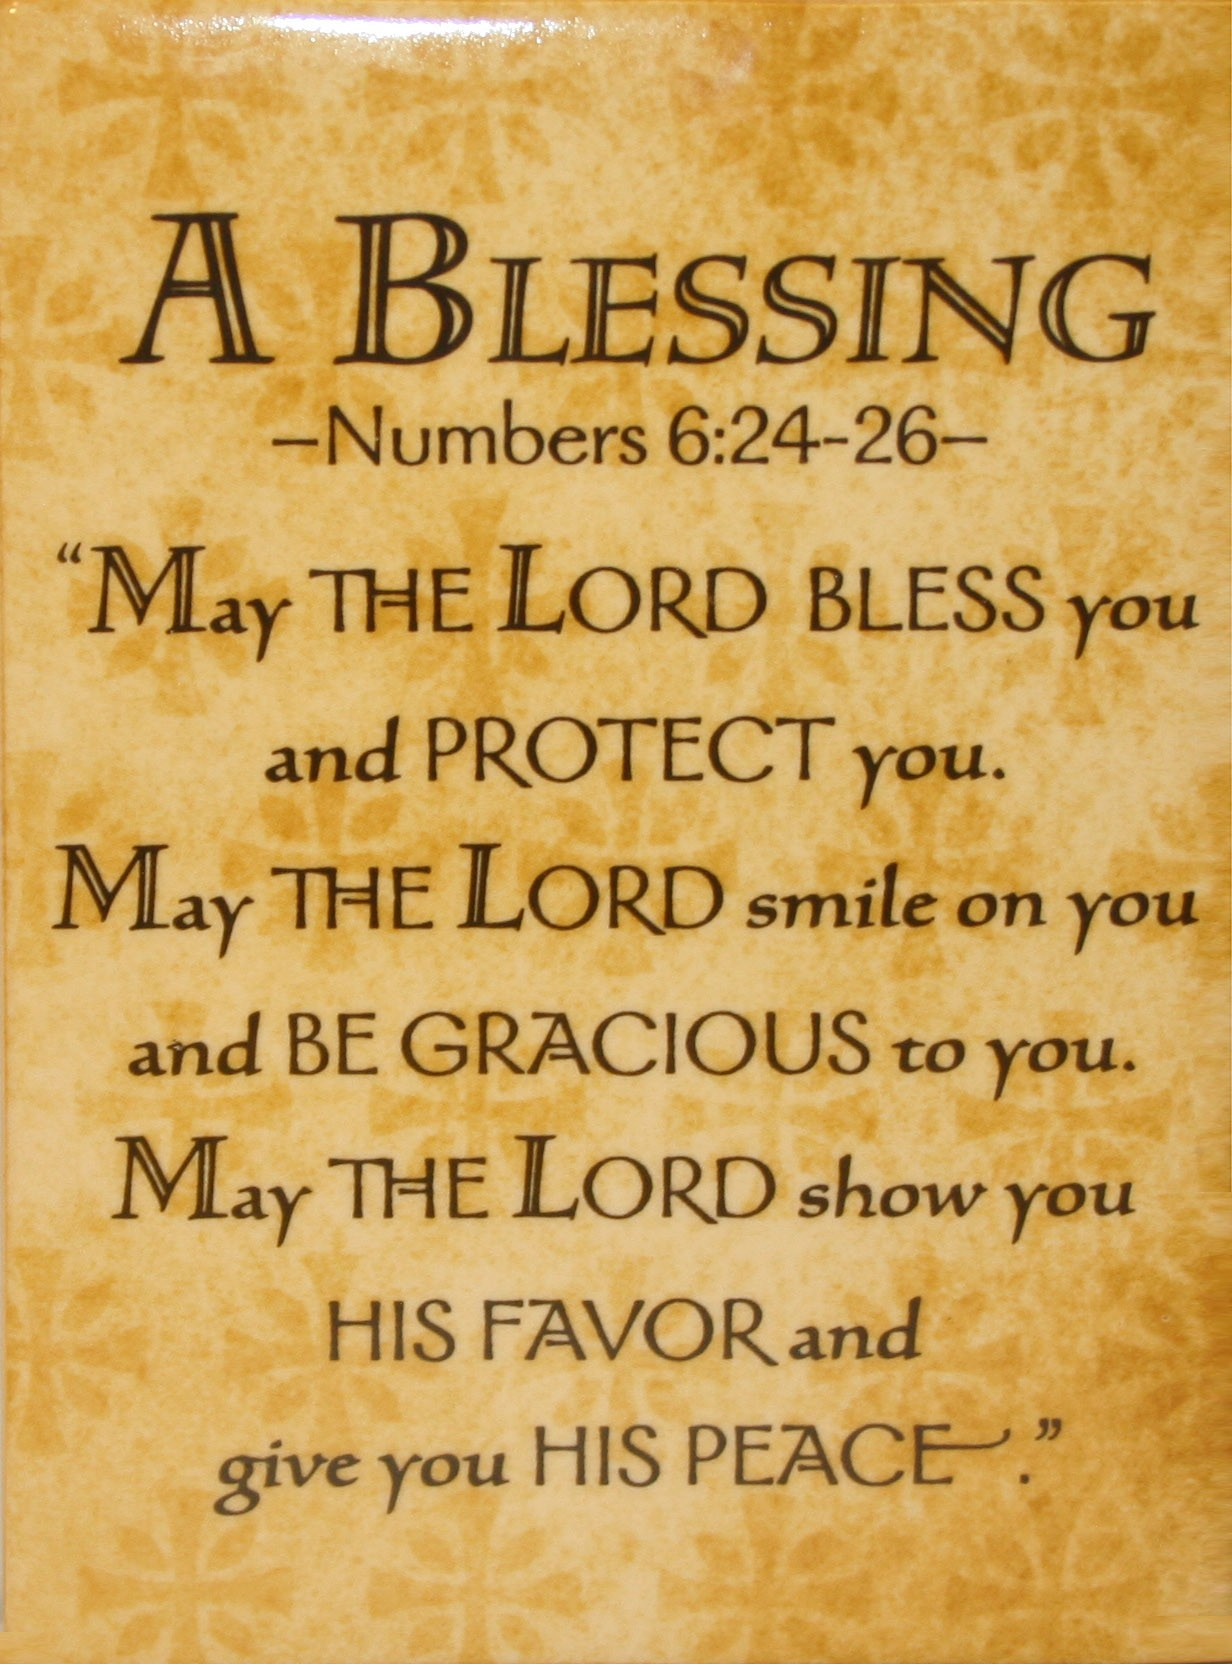 You Are A Blessing Quotes A Blessing May The Lord Bless You And Protect Youmay The Lord